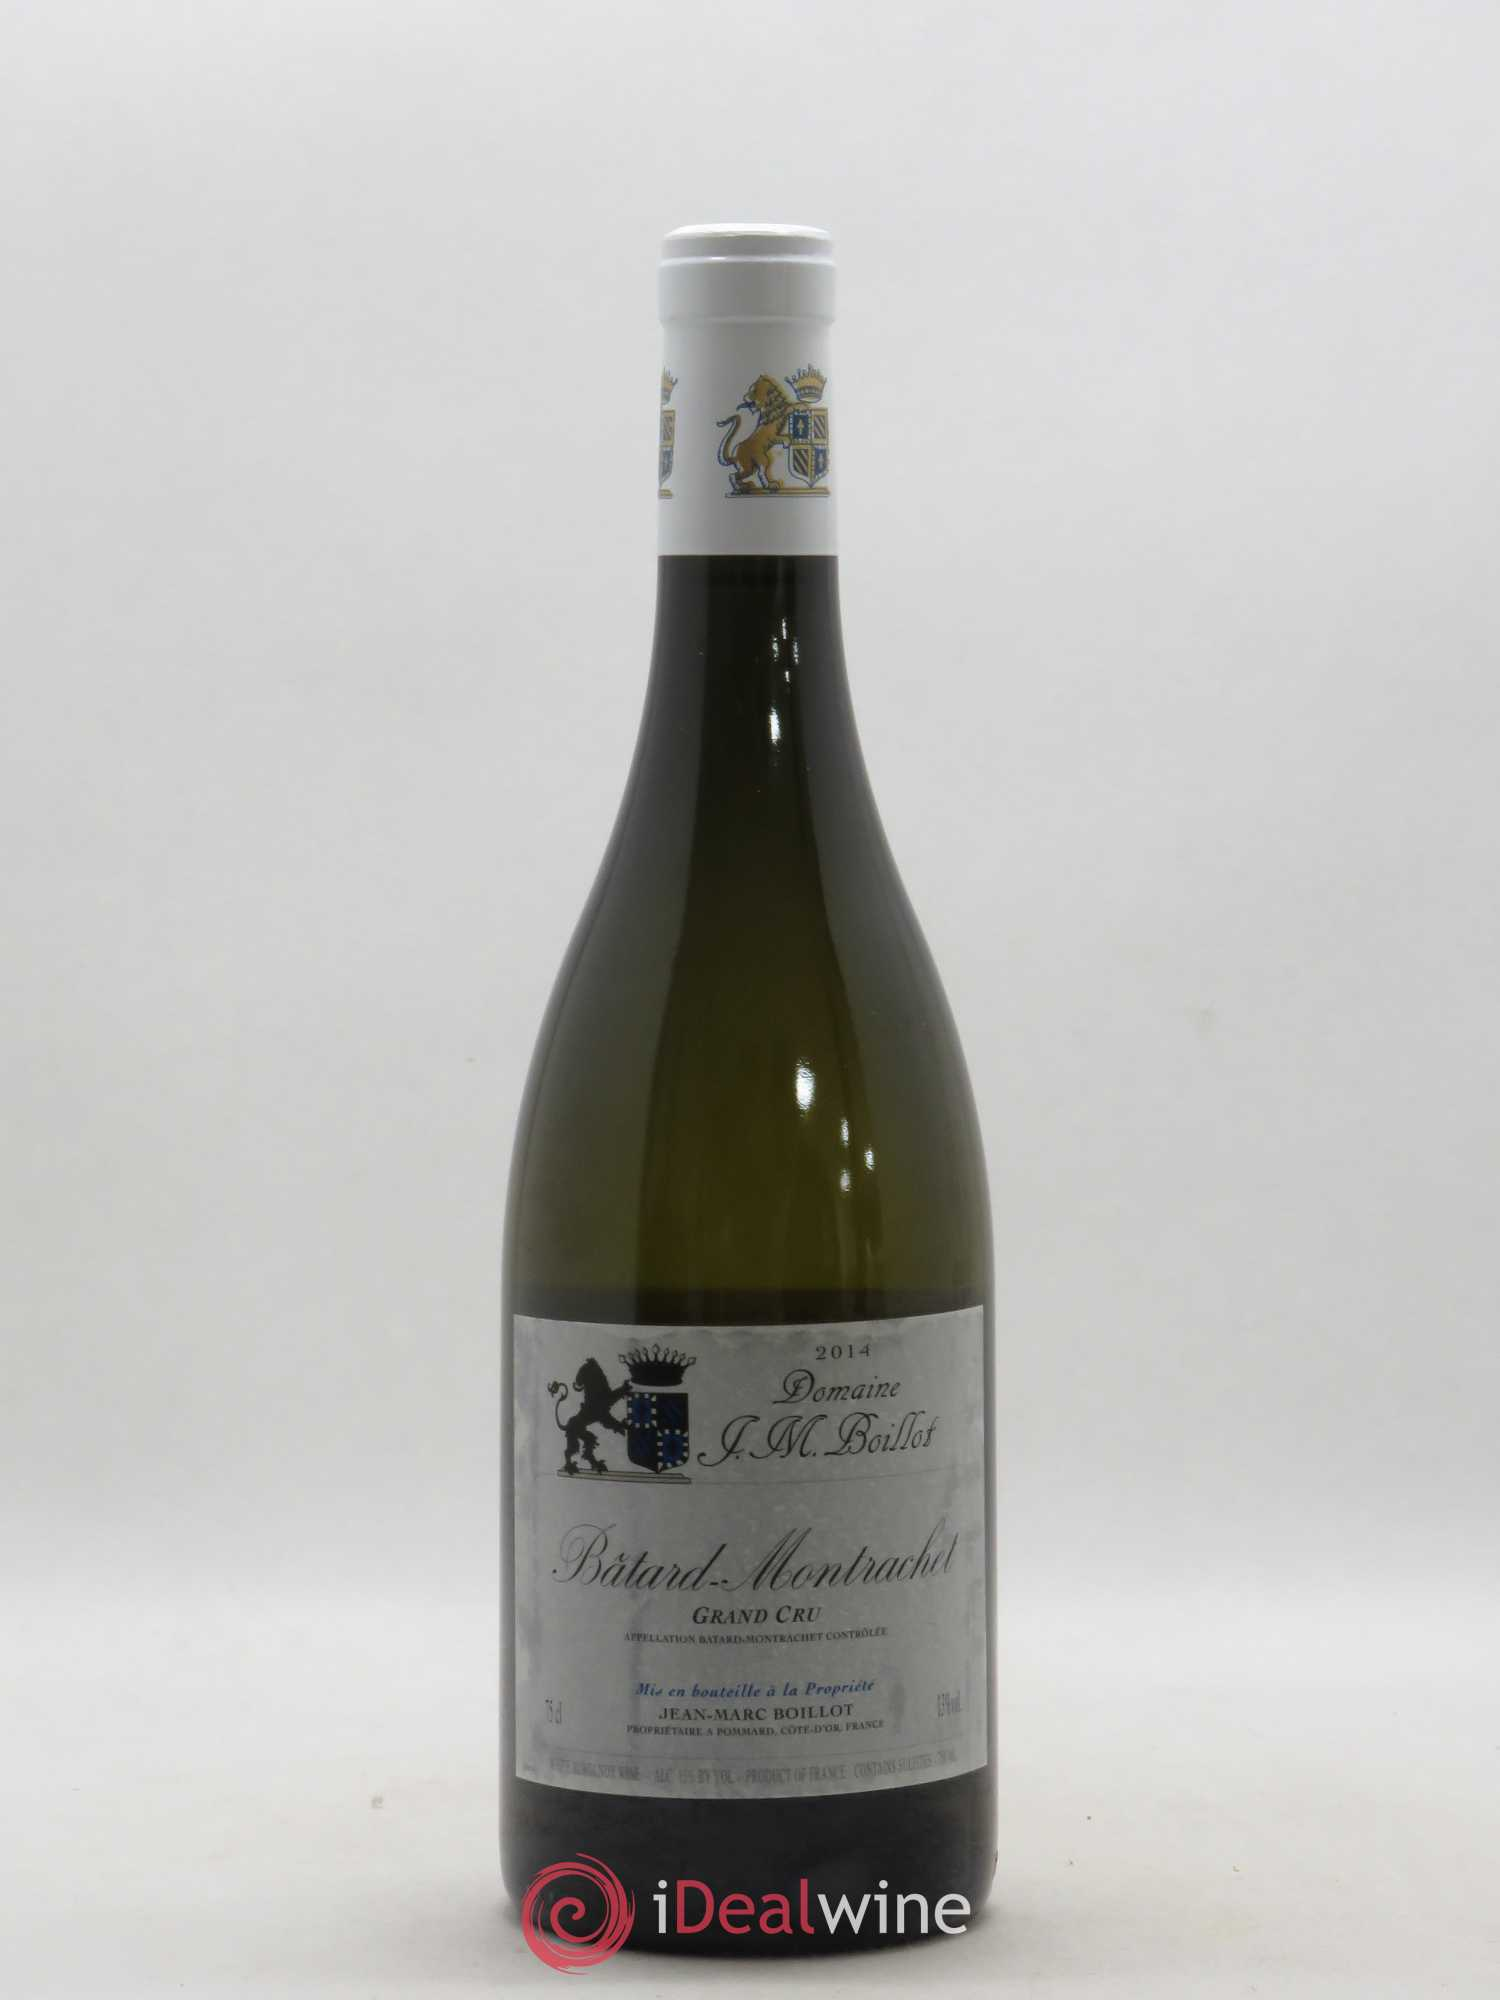 Bâtard-Montrachet Grand Cru Jean-Marc Boillot  2014 - Lot of 1 Bottle